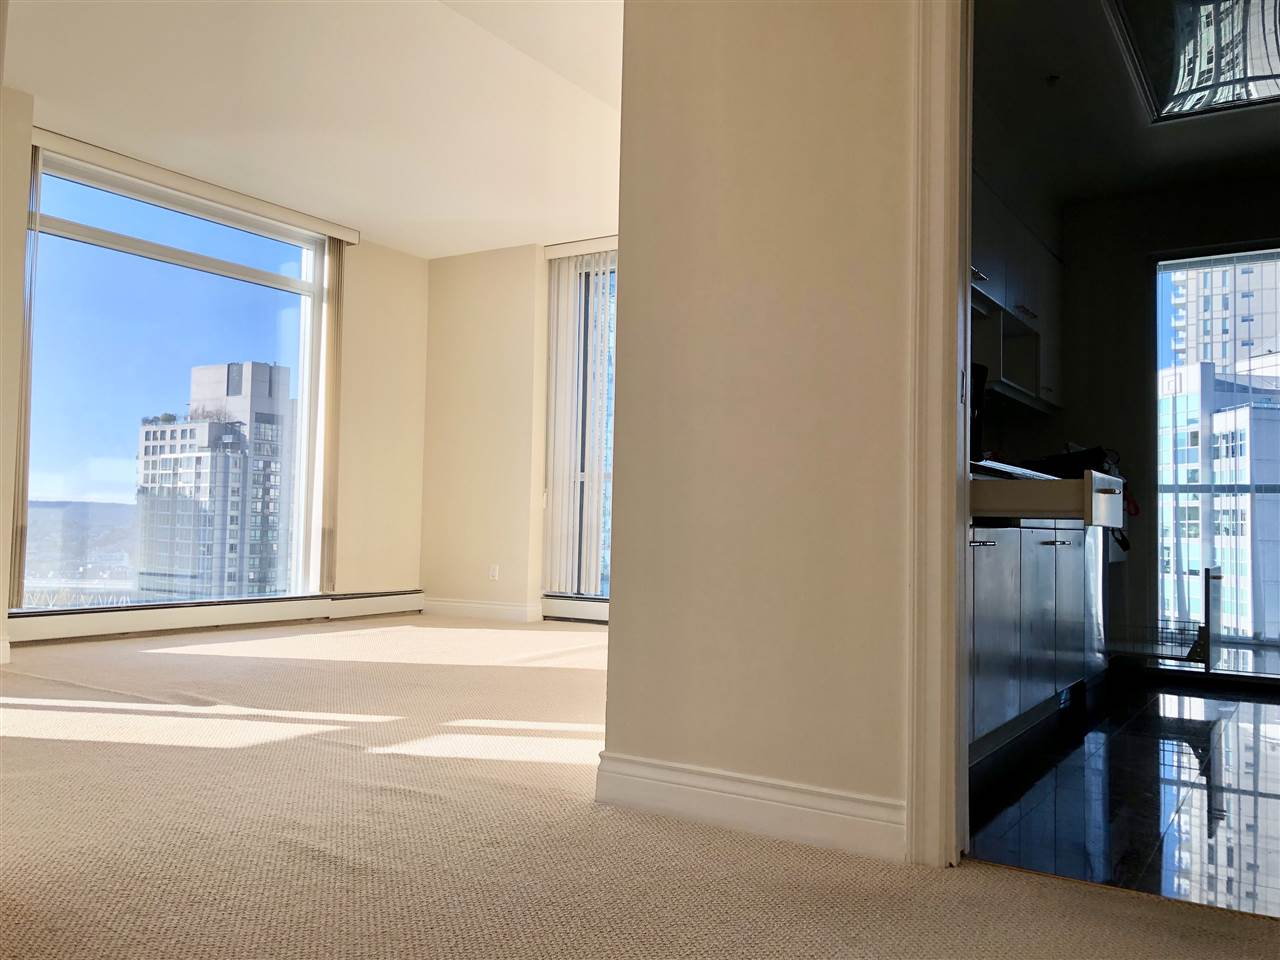 3001 388 DRAKE STREET - Yaletown Apartment/Condo for sale, 3 Bedrooms (R2422644) - #6